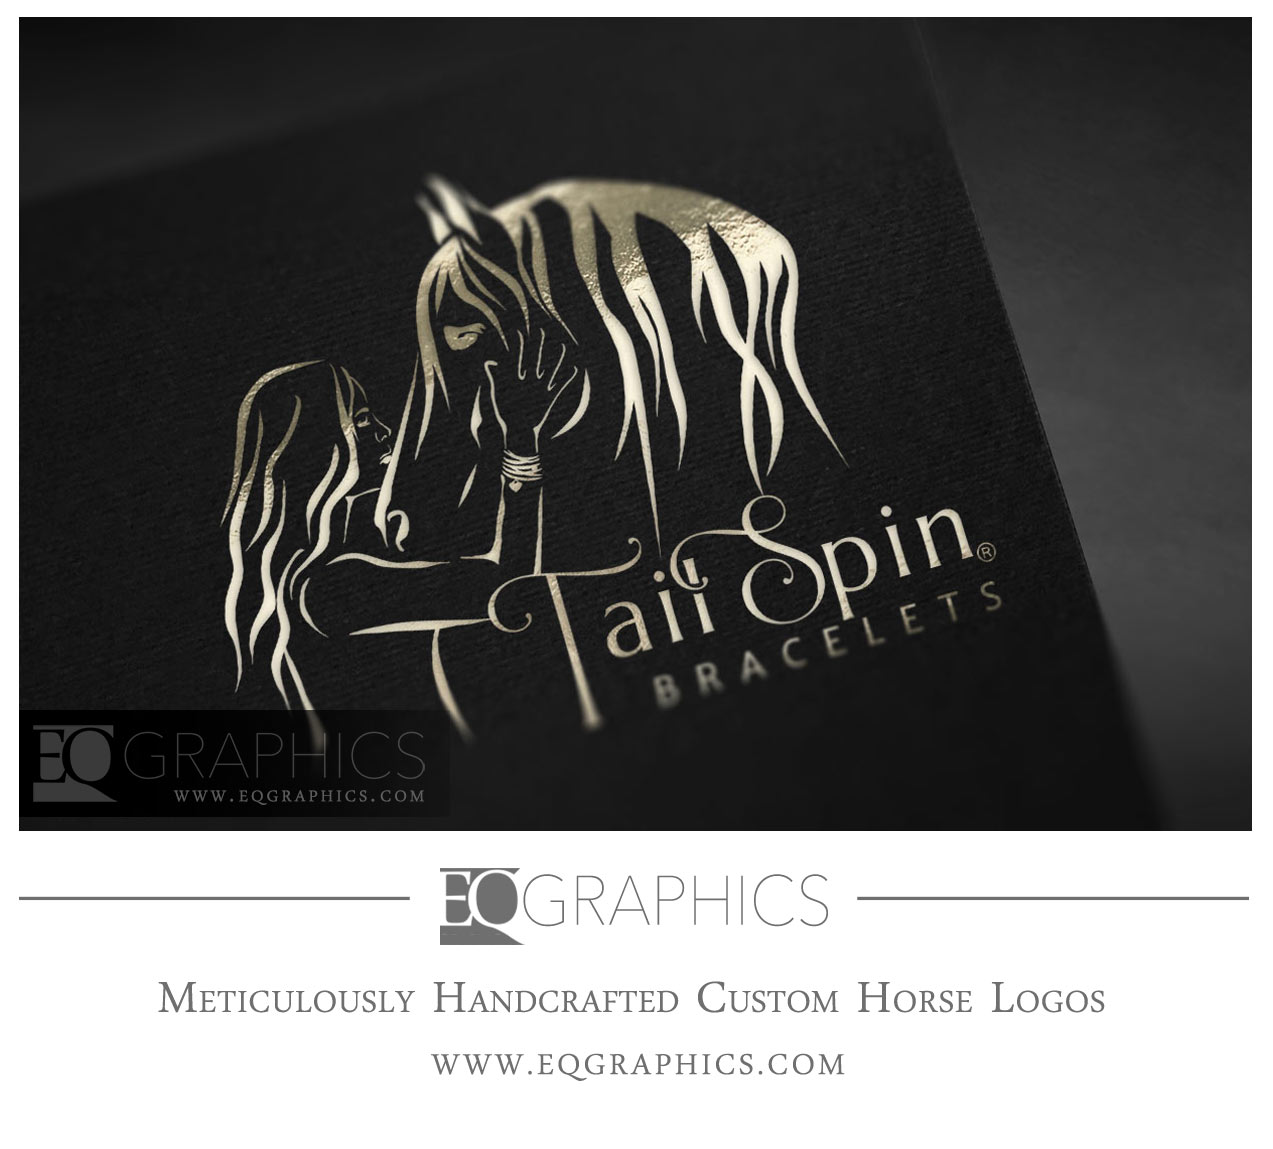 Tailspin Bracelets Horse Woman Girl Logo Design by EQ Graphics Custom Equine Logos